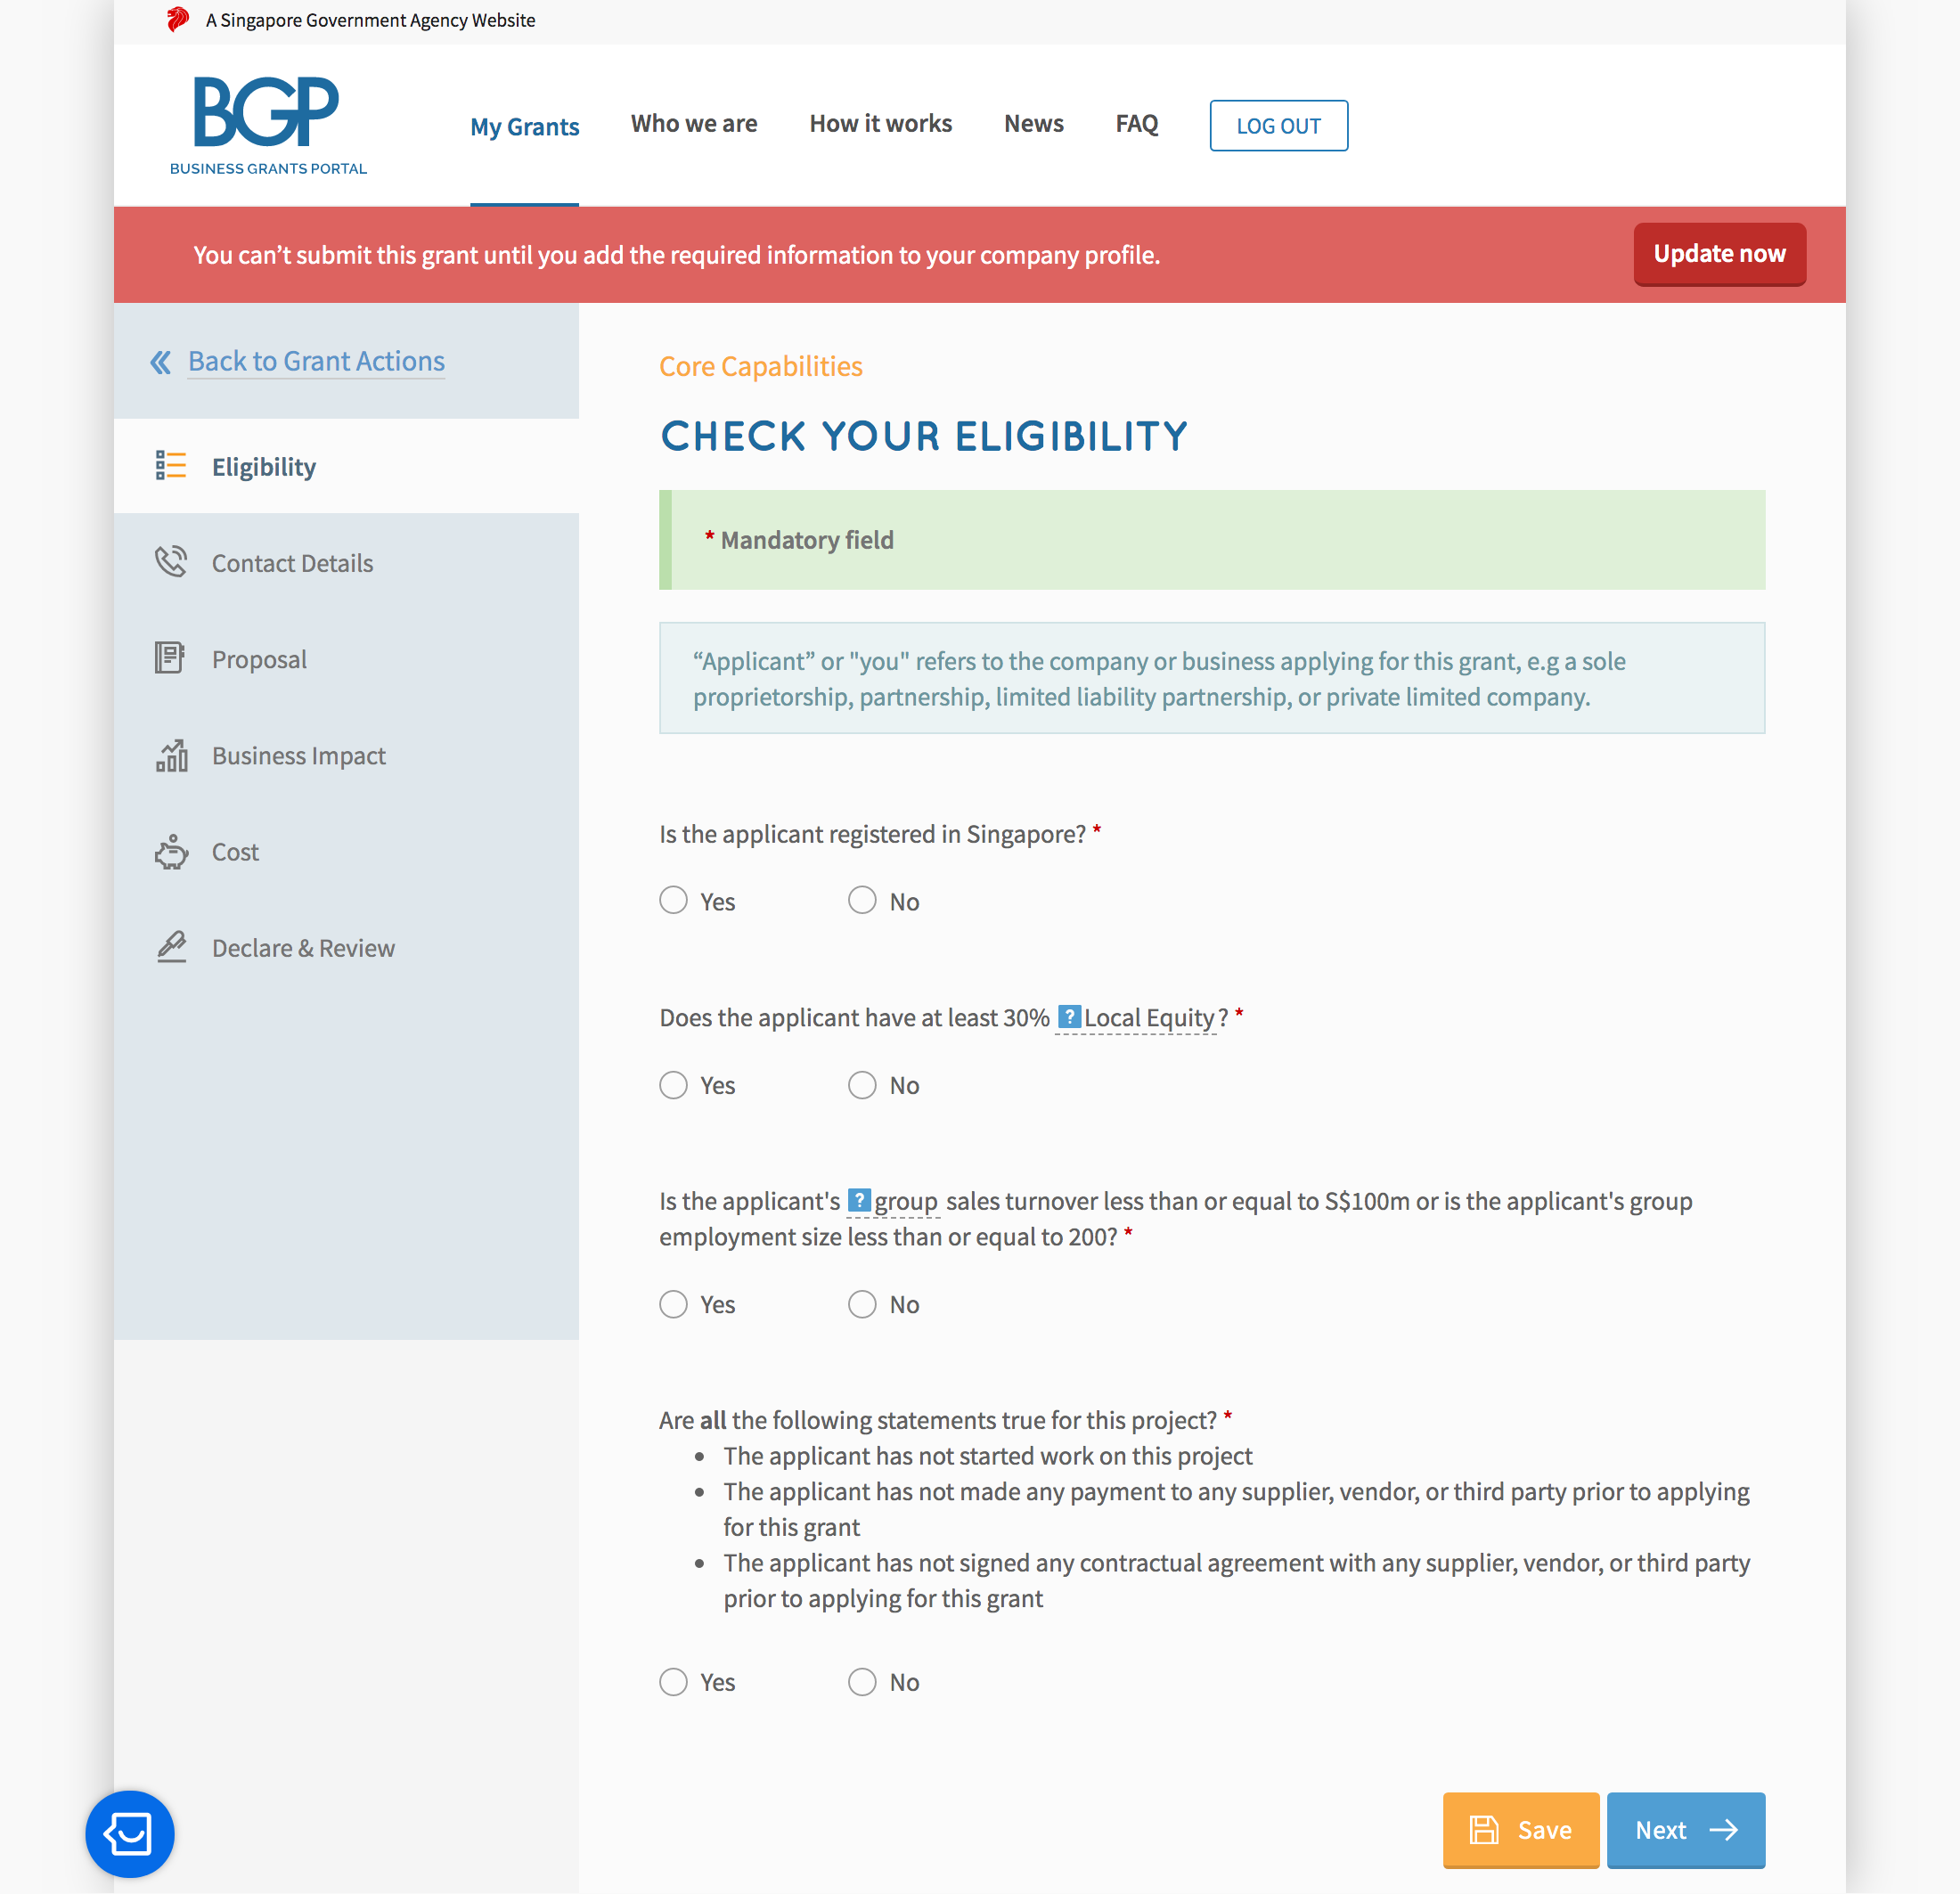 businessgrants-portal-edg-walkthrough8-2019